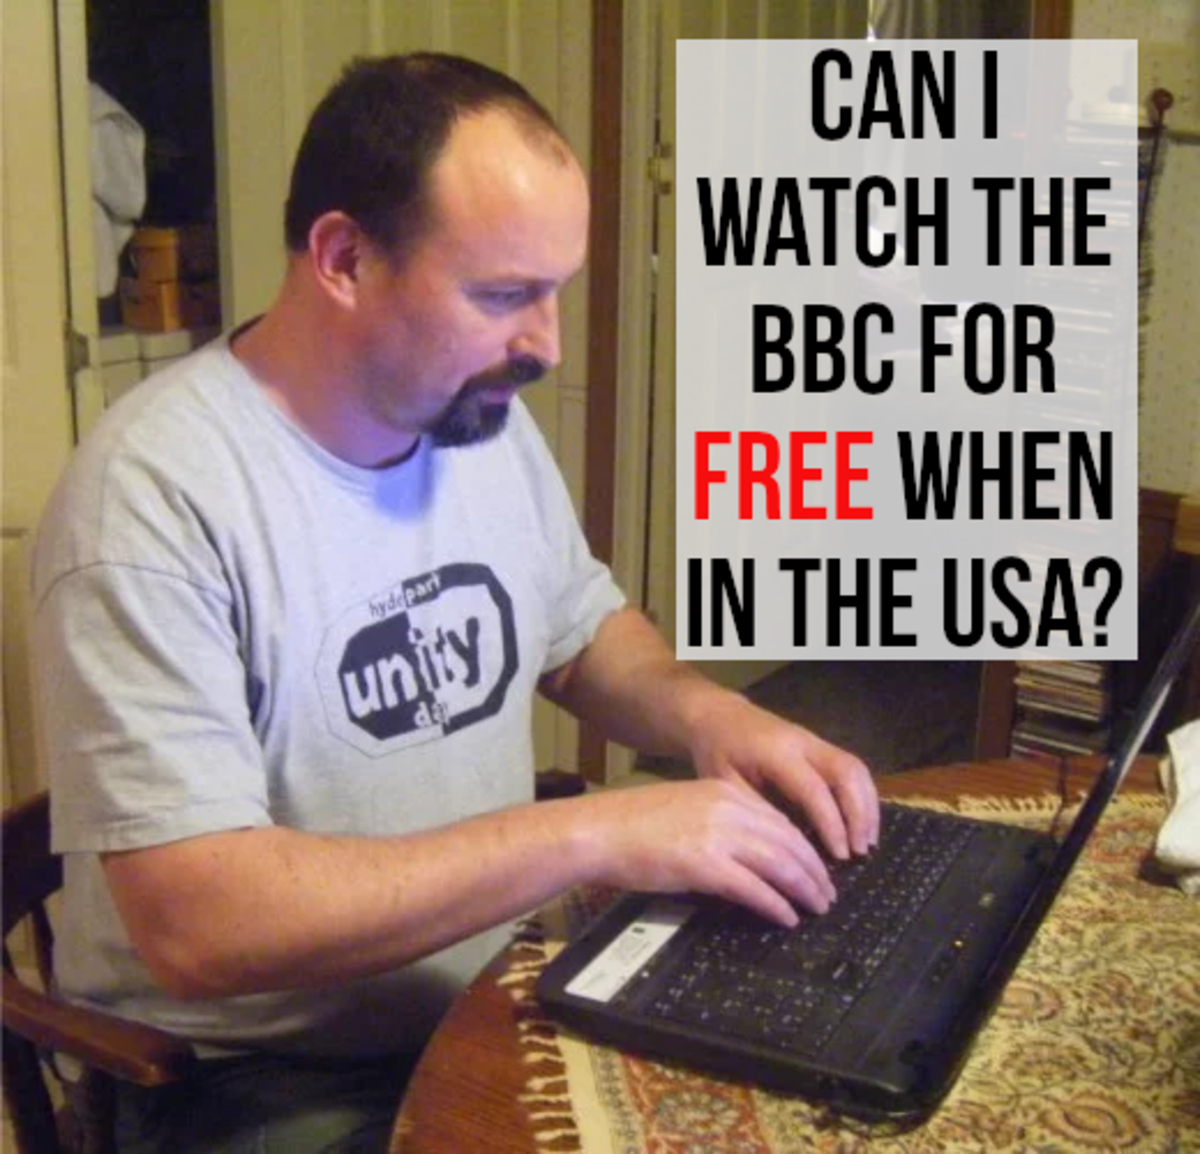 I spend a lot of my time in the USA. I don't watch a lot of British TV, but sometimes it's nice to watch big occasions, television shows, or sporting events broadcast by the BBC.